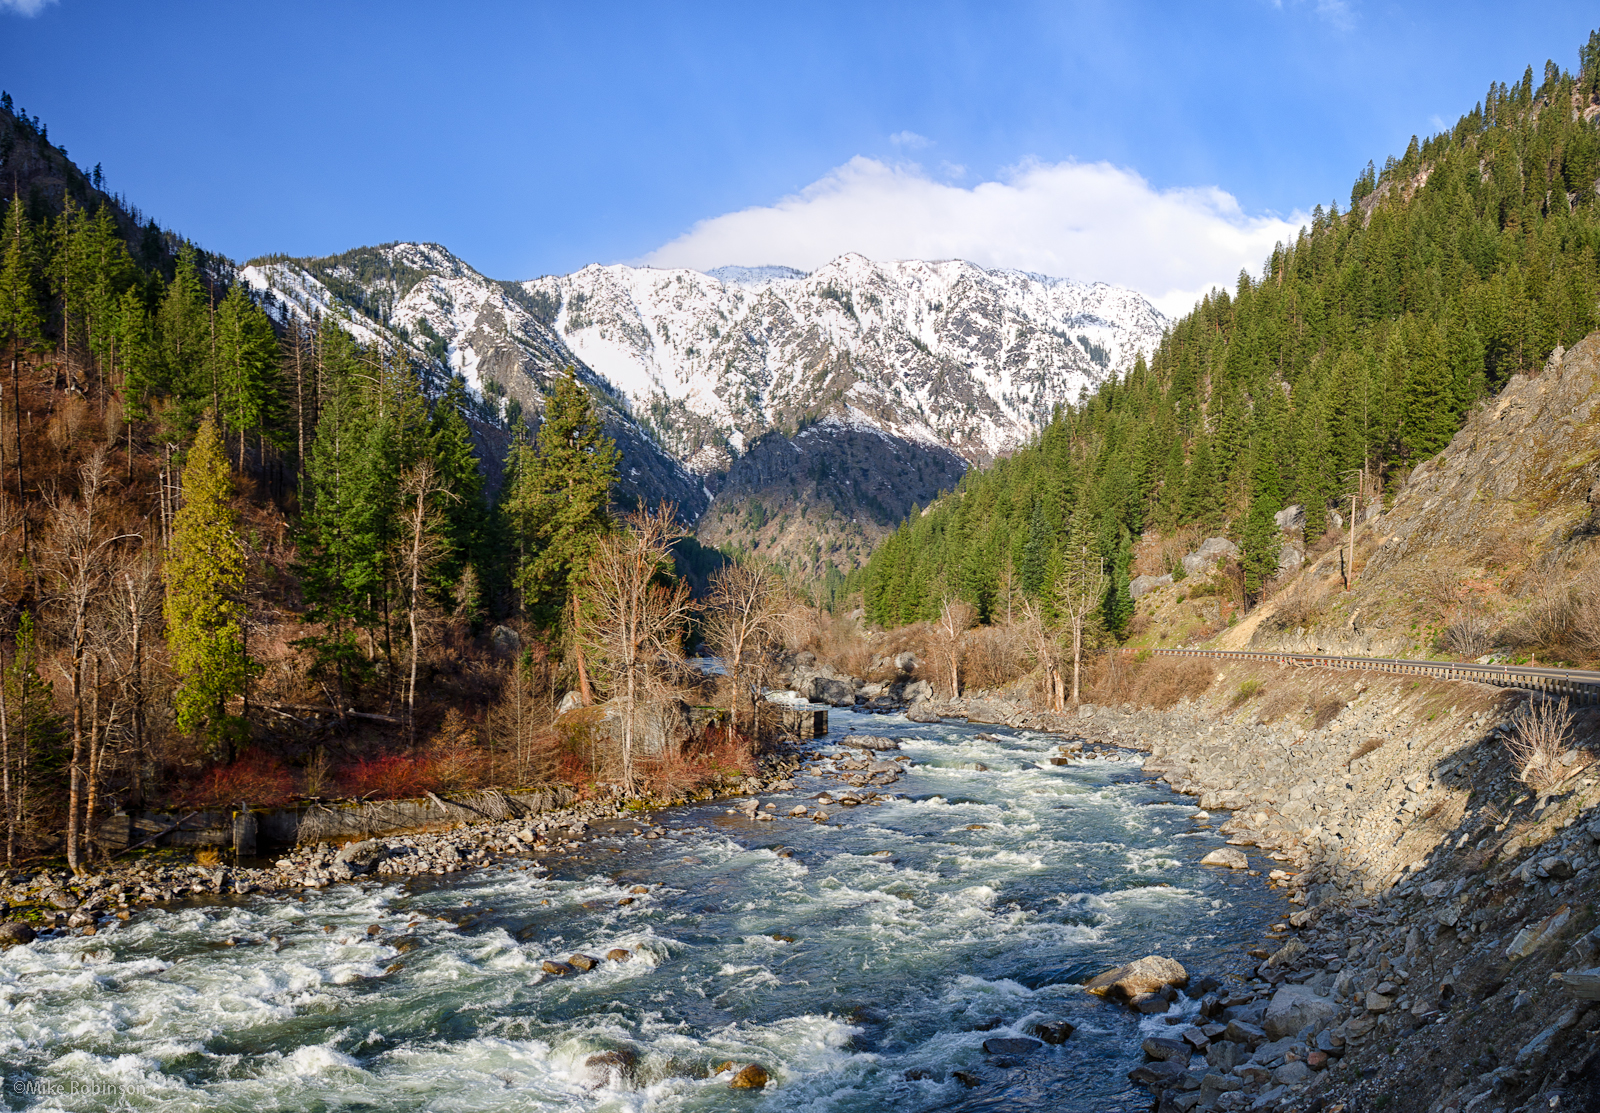 river between two wooded hills with snowy mountains in the background